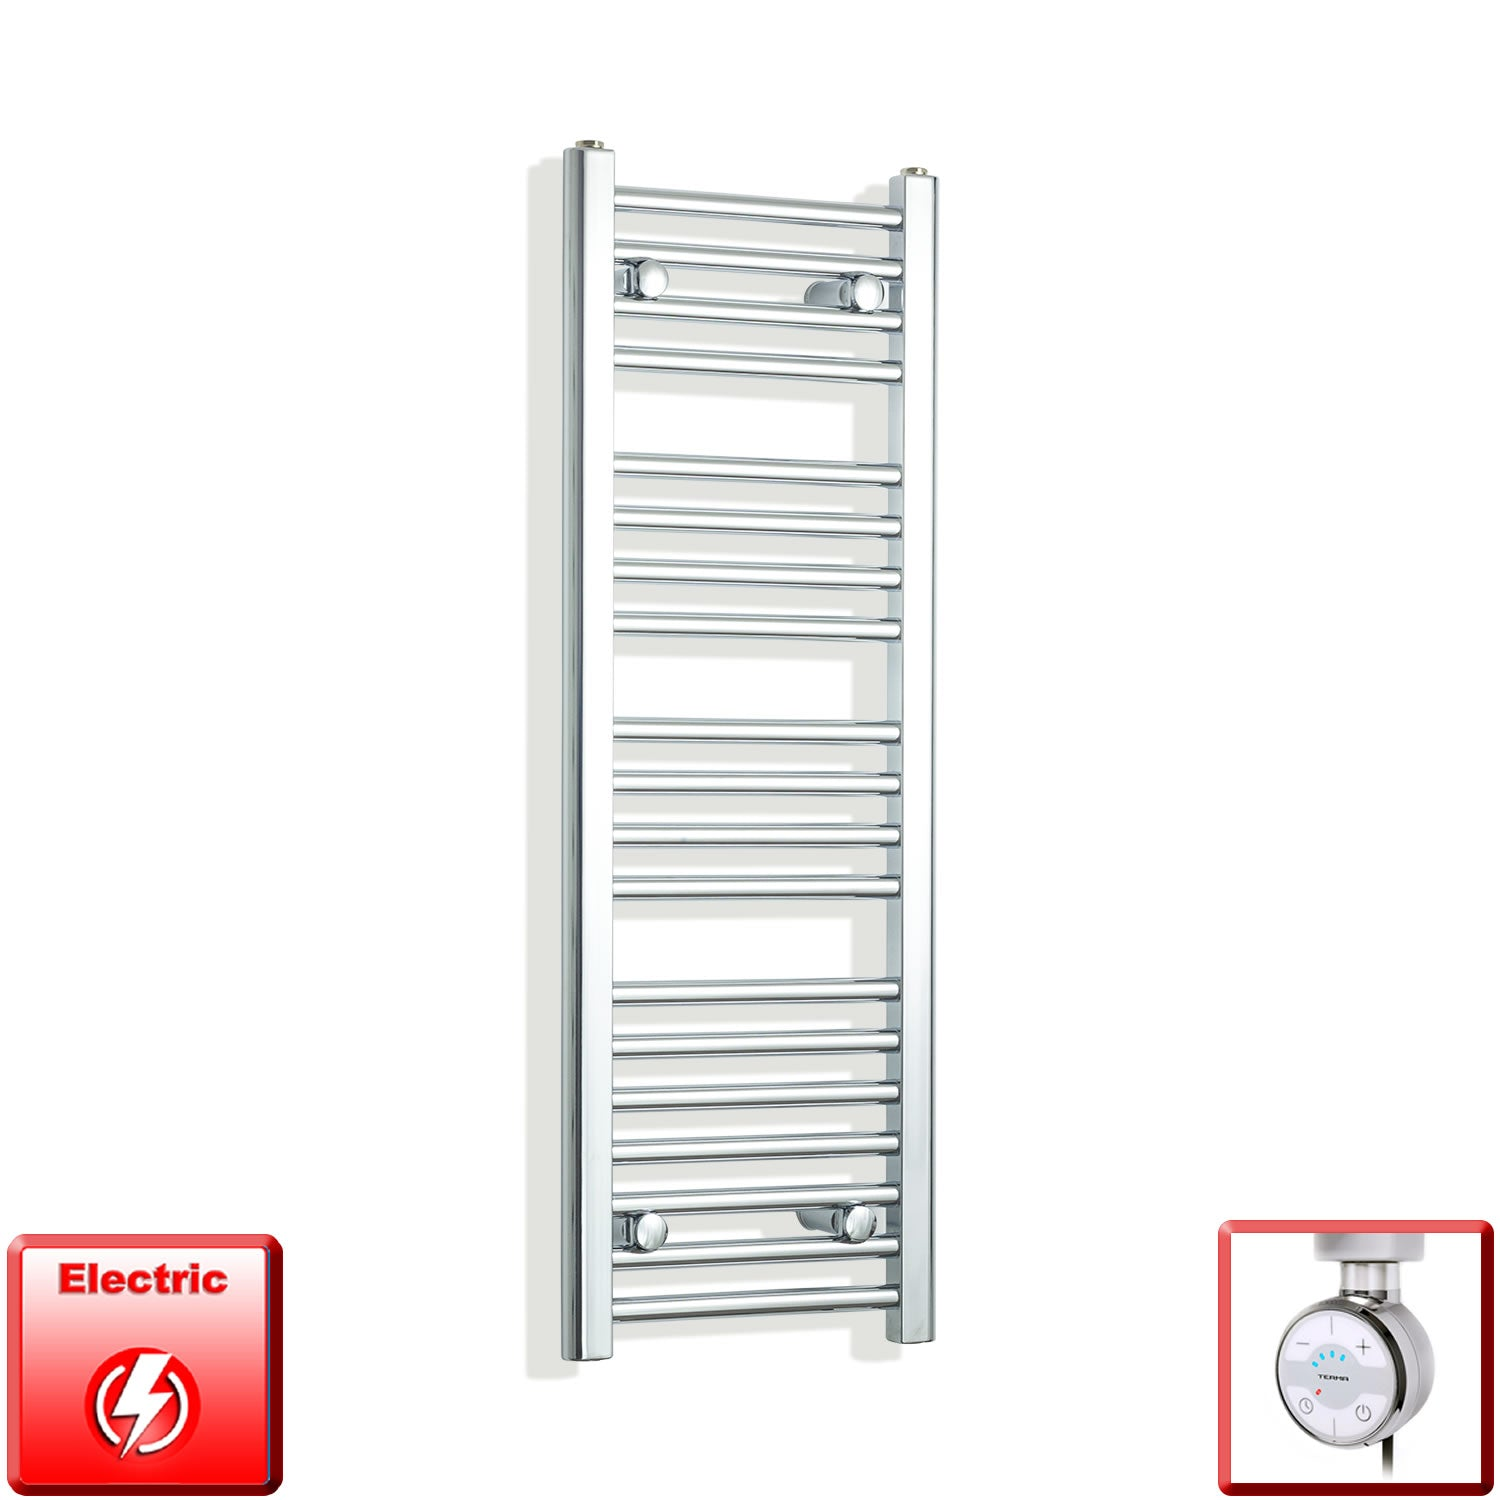 350mm Wide 1000mm High Pre-Filled Chrome Electric Towel Rail Radiator With Thermostatic MEG Element